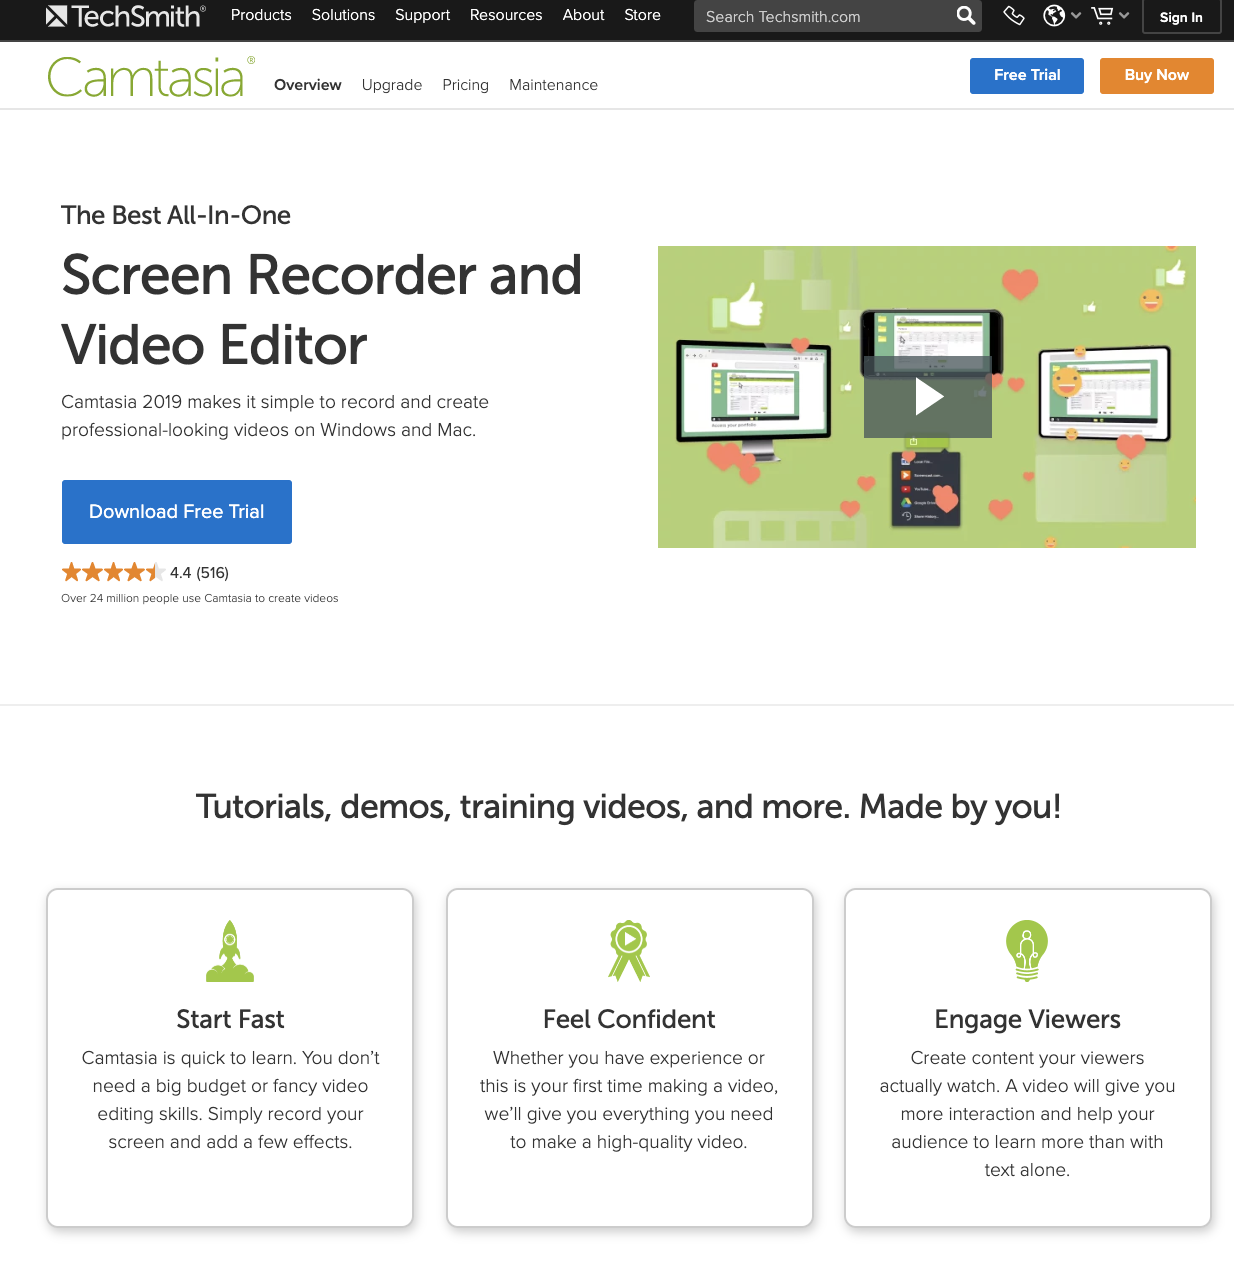 TechSmith eLearning Resources Guide